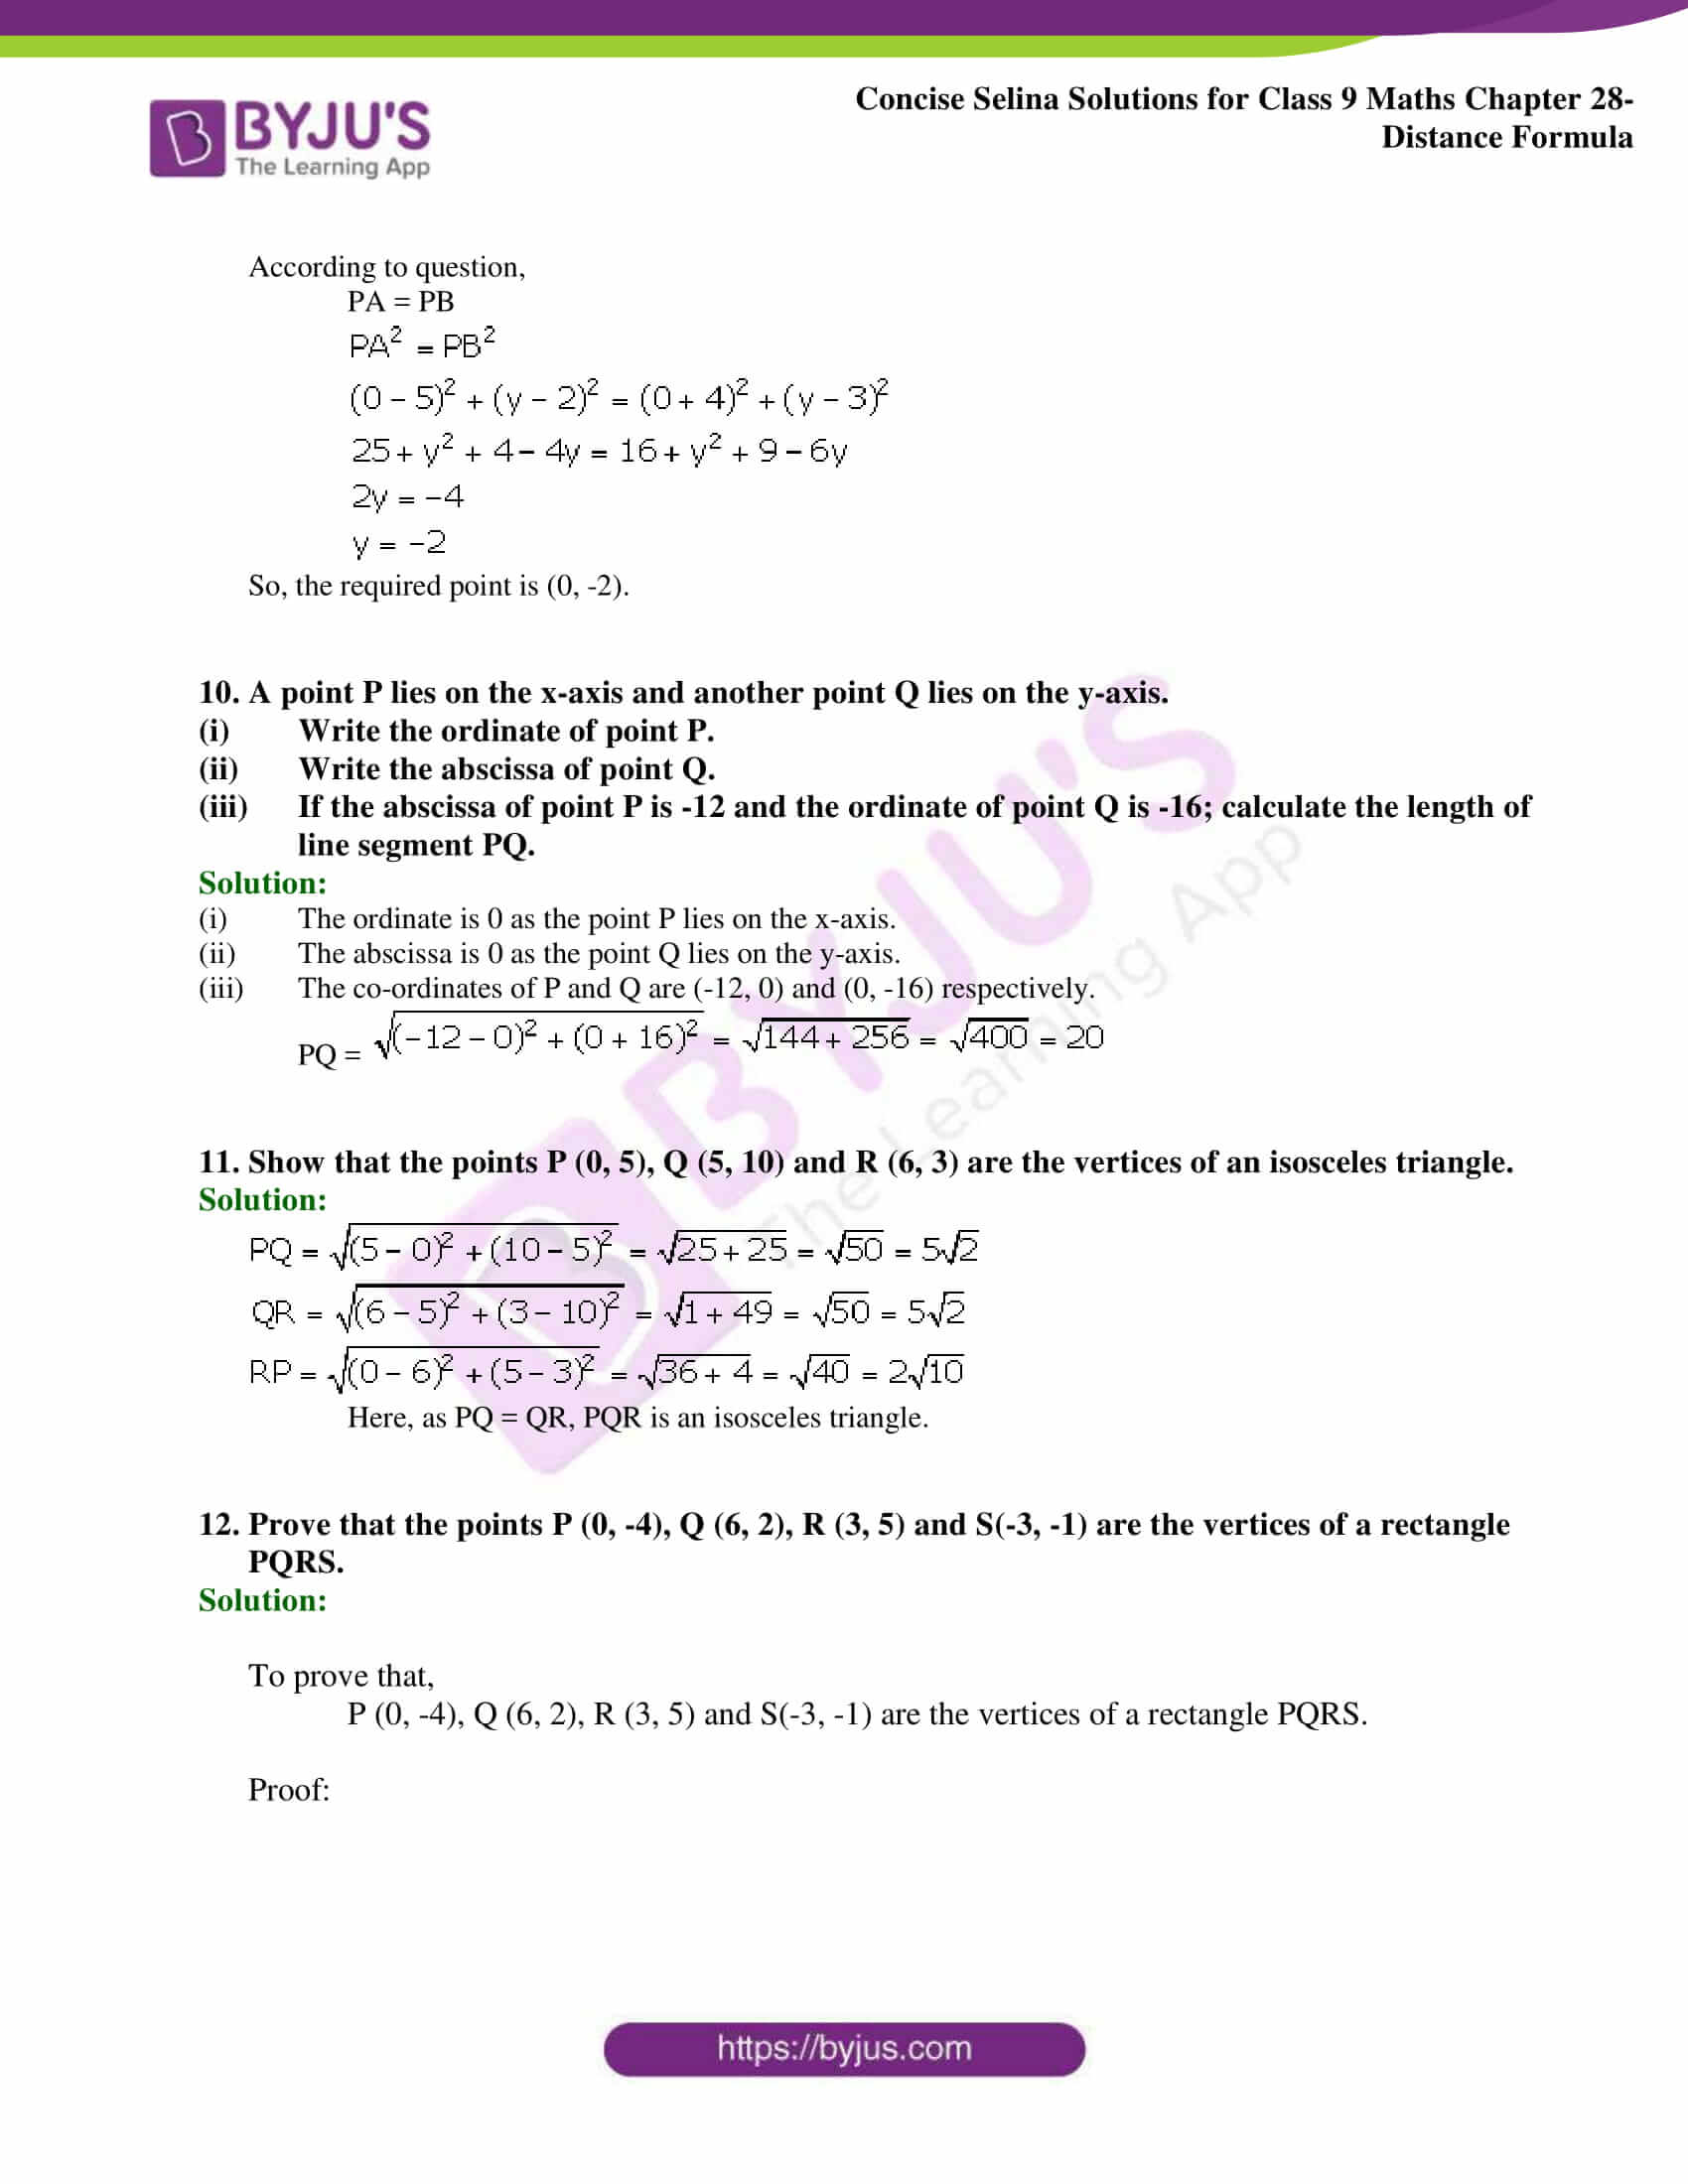 Concise Selina Solutions Class 9 Maths Chapter 28 Distance Formula part 05